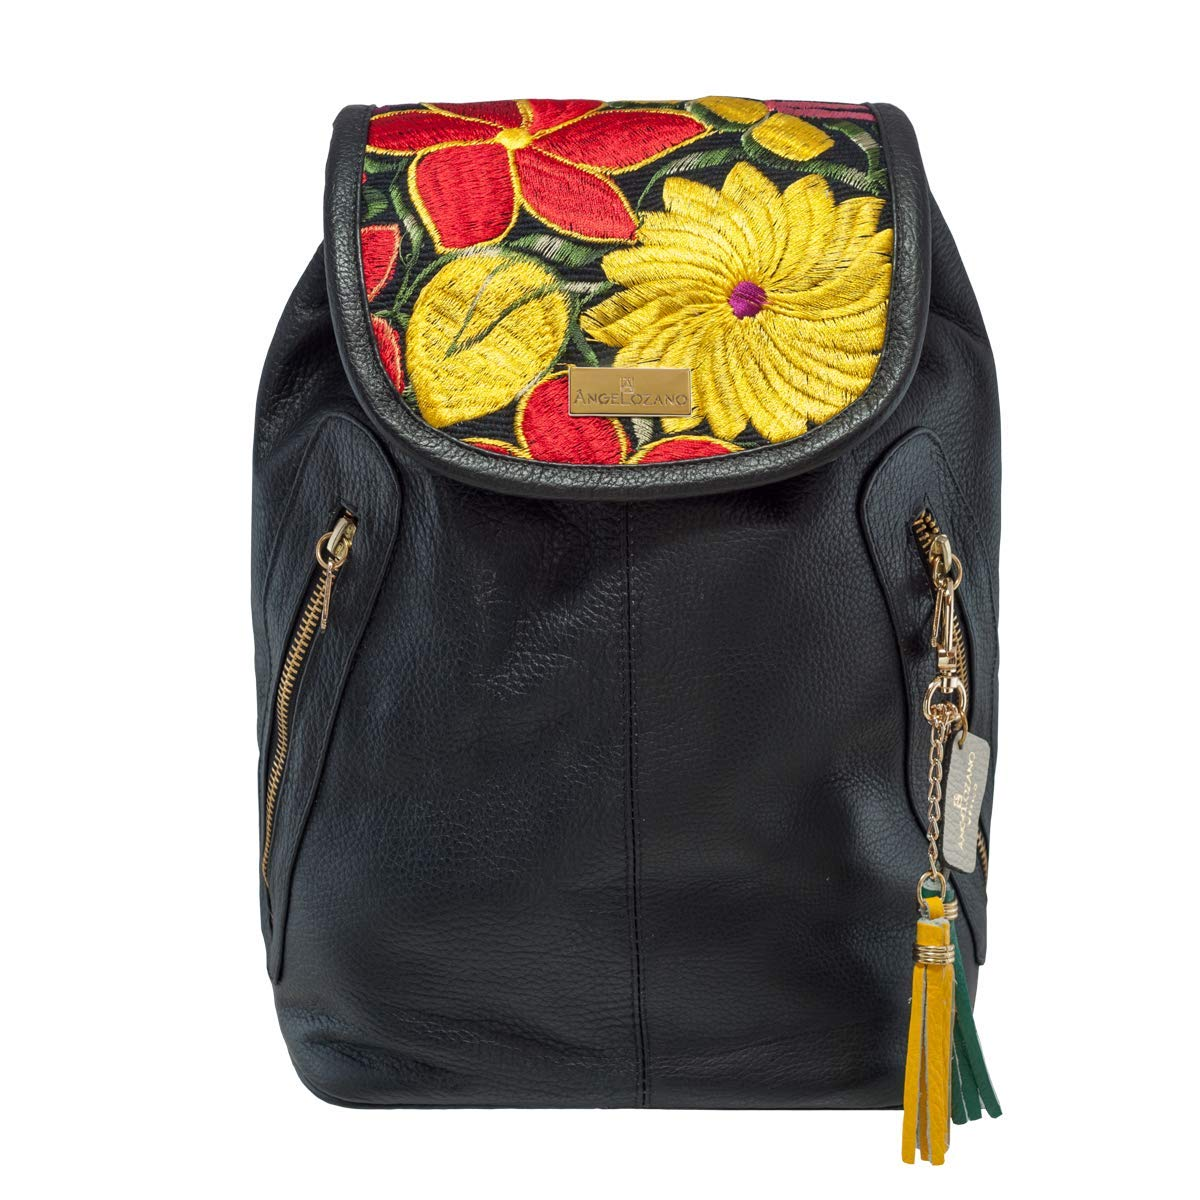 Amazon.com: Black Galilea model leather Bag with Artisan Embroidery. Original AngeLozano Brand. 10.24 x 5.91 x 11.42 inches: Handmade